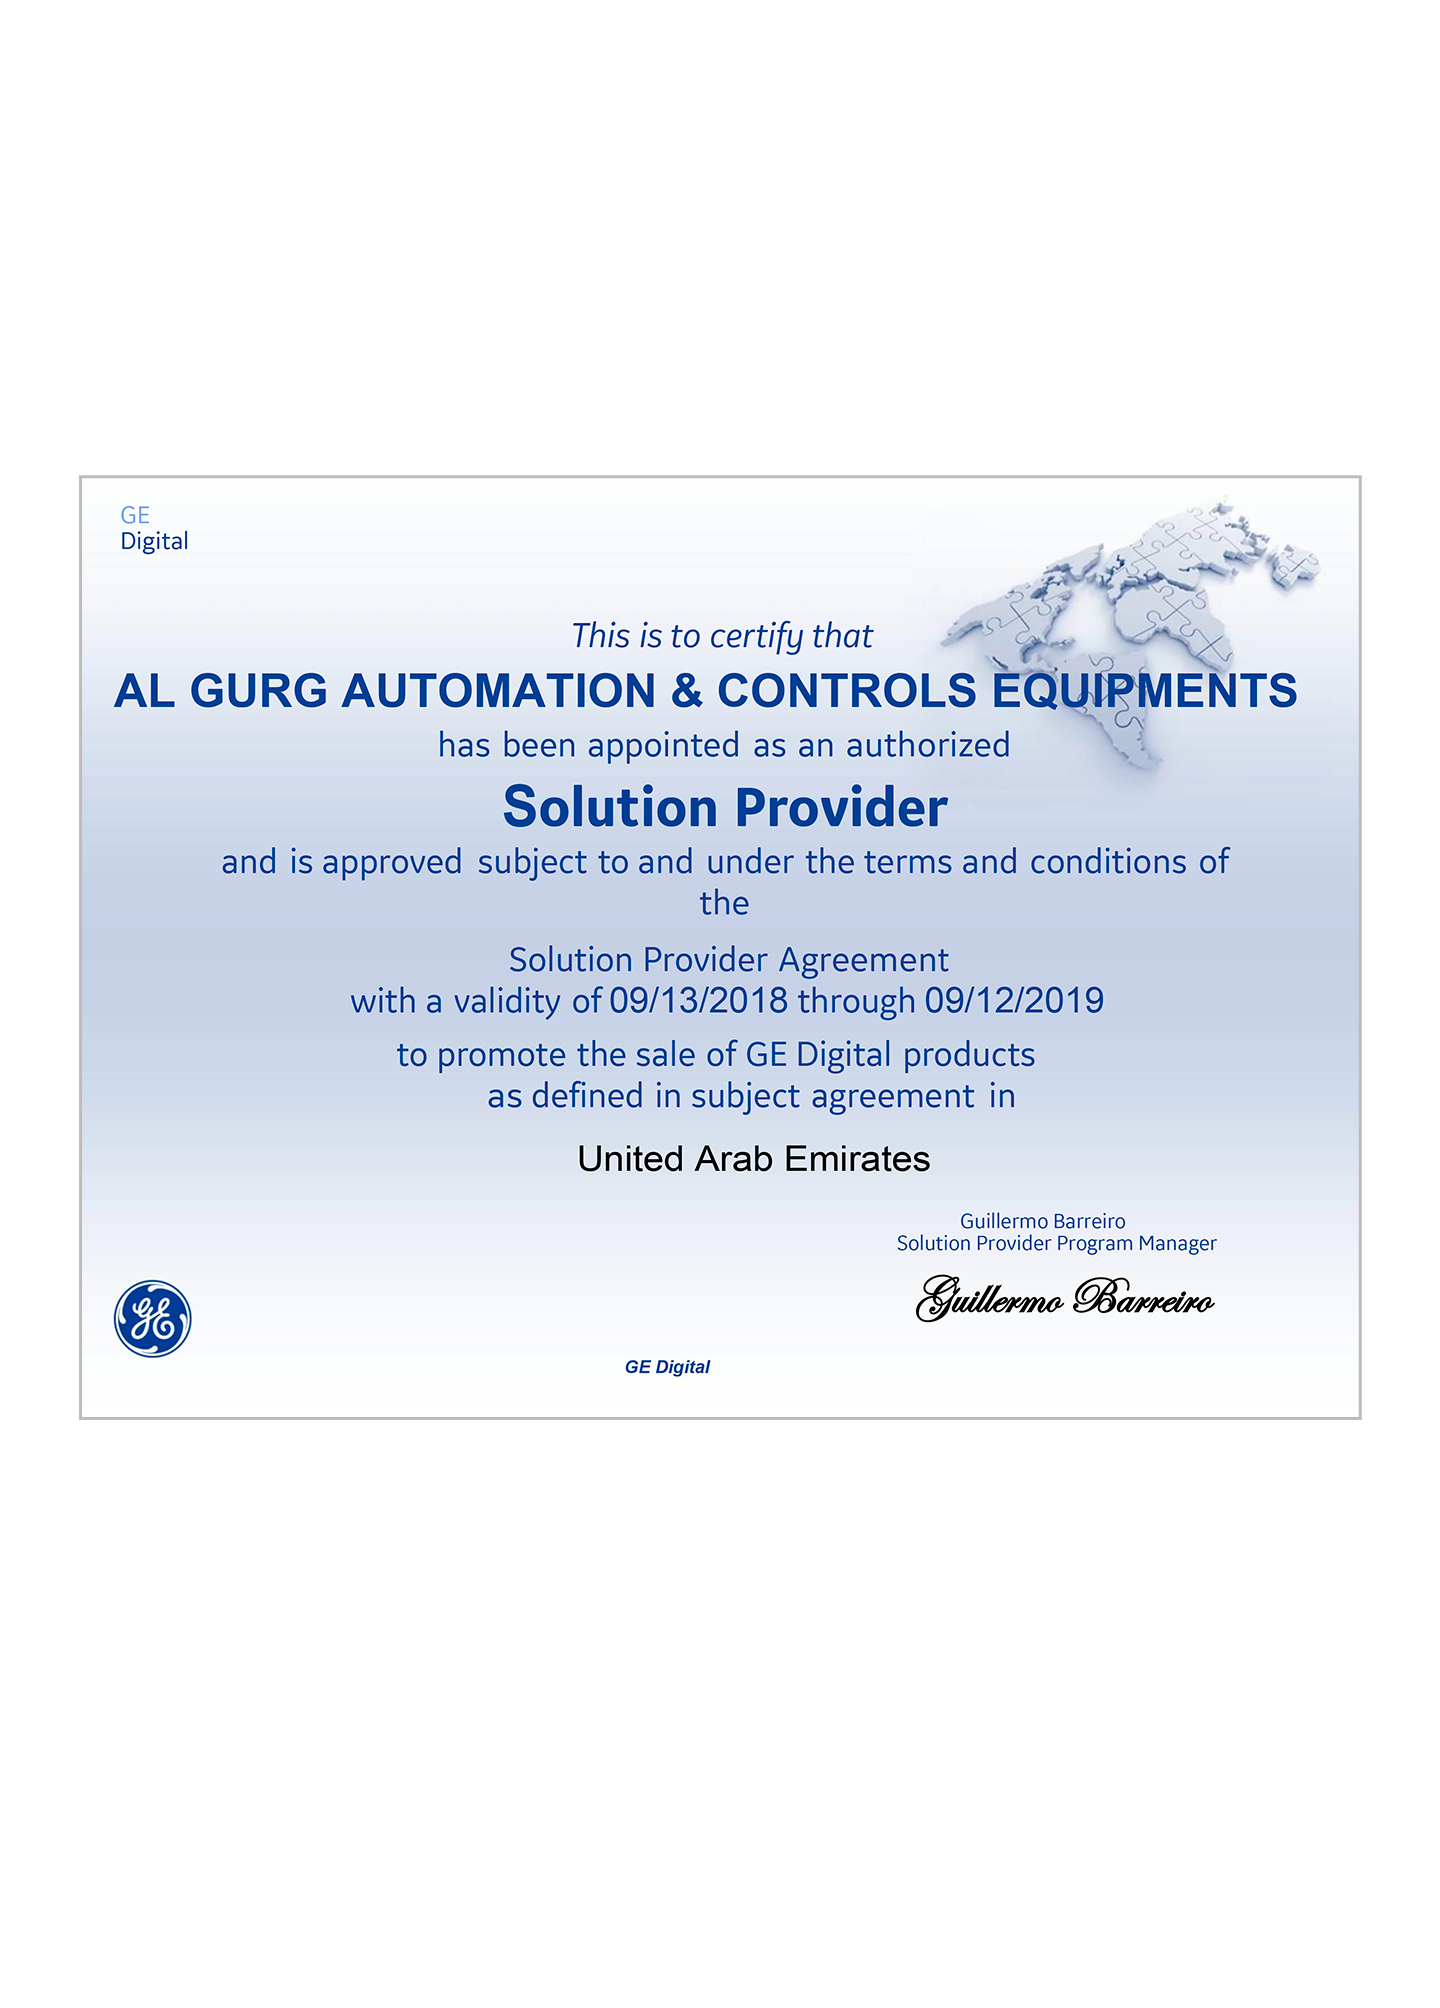 Solution-Provider-Certificate-2019--AL-GURG-AUTOMATION--CONTROLS-EQUIPM.jpg